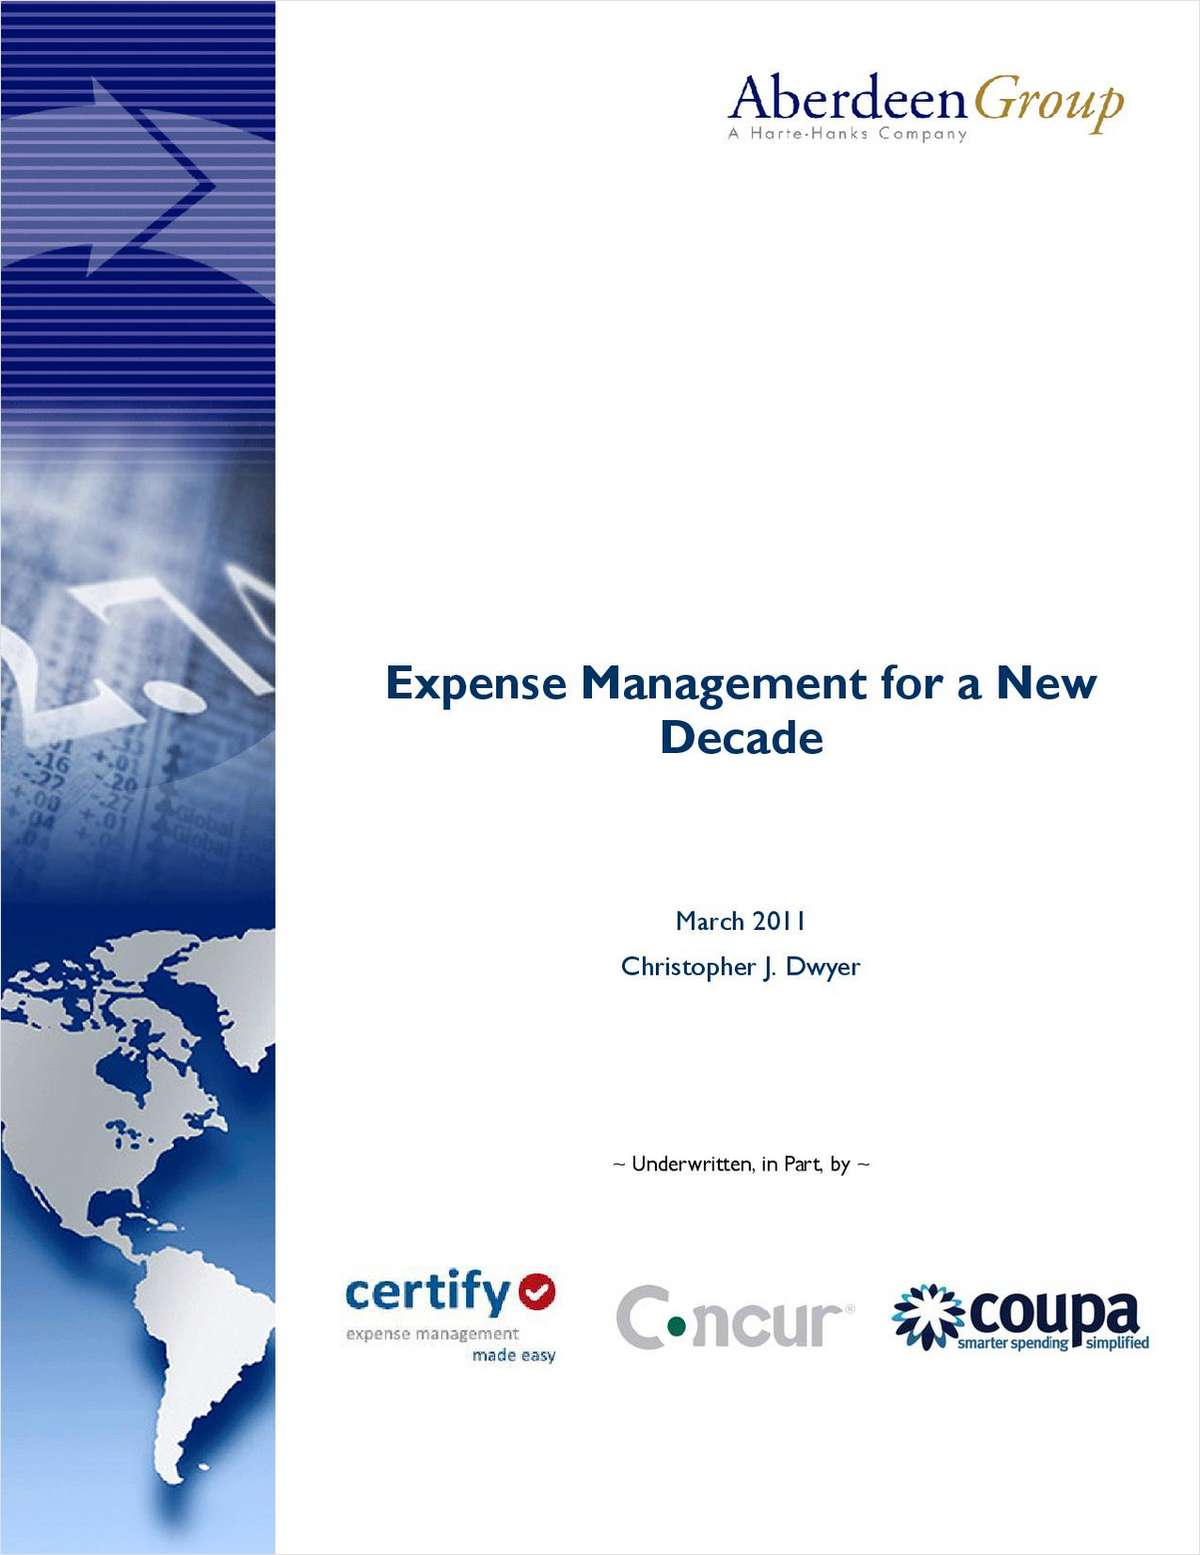 Expense Management for a New Decade